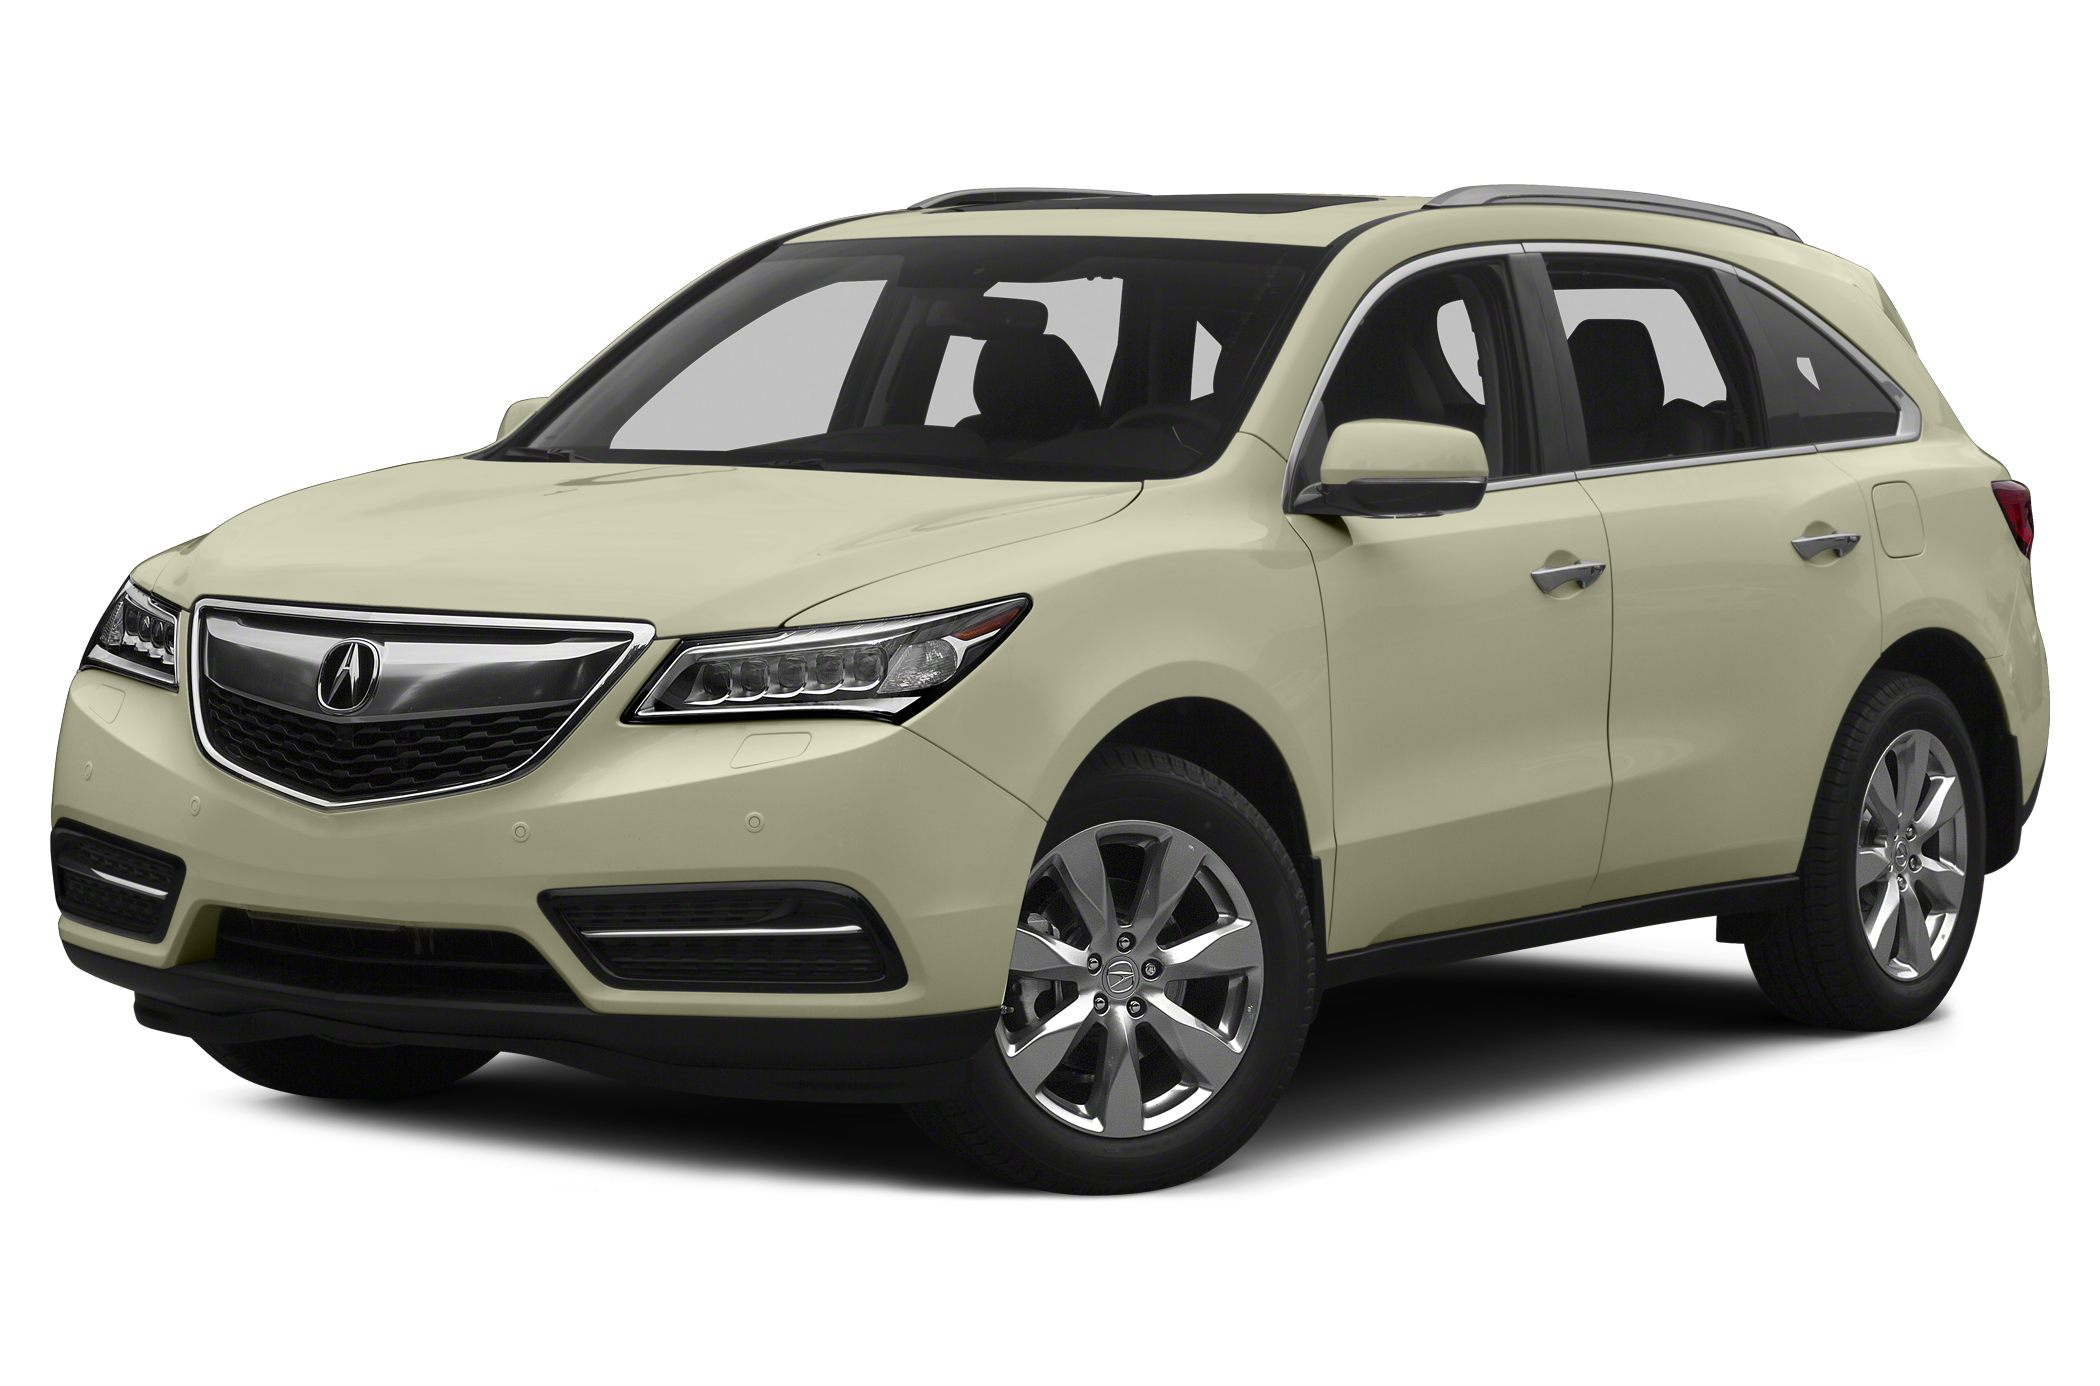 2015 Acura MDX 3.5L Advance Pkg W/Entertainment Pkg SUV for sale in Falls Church for $56,980 with 0 miles.